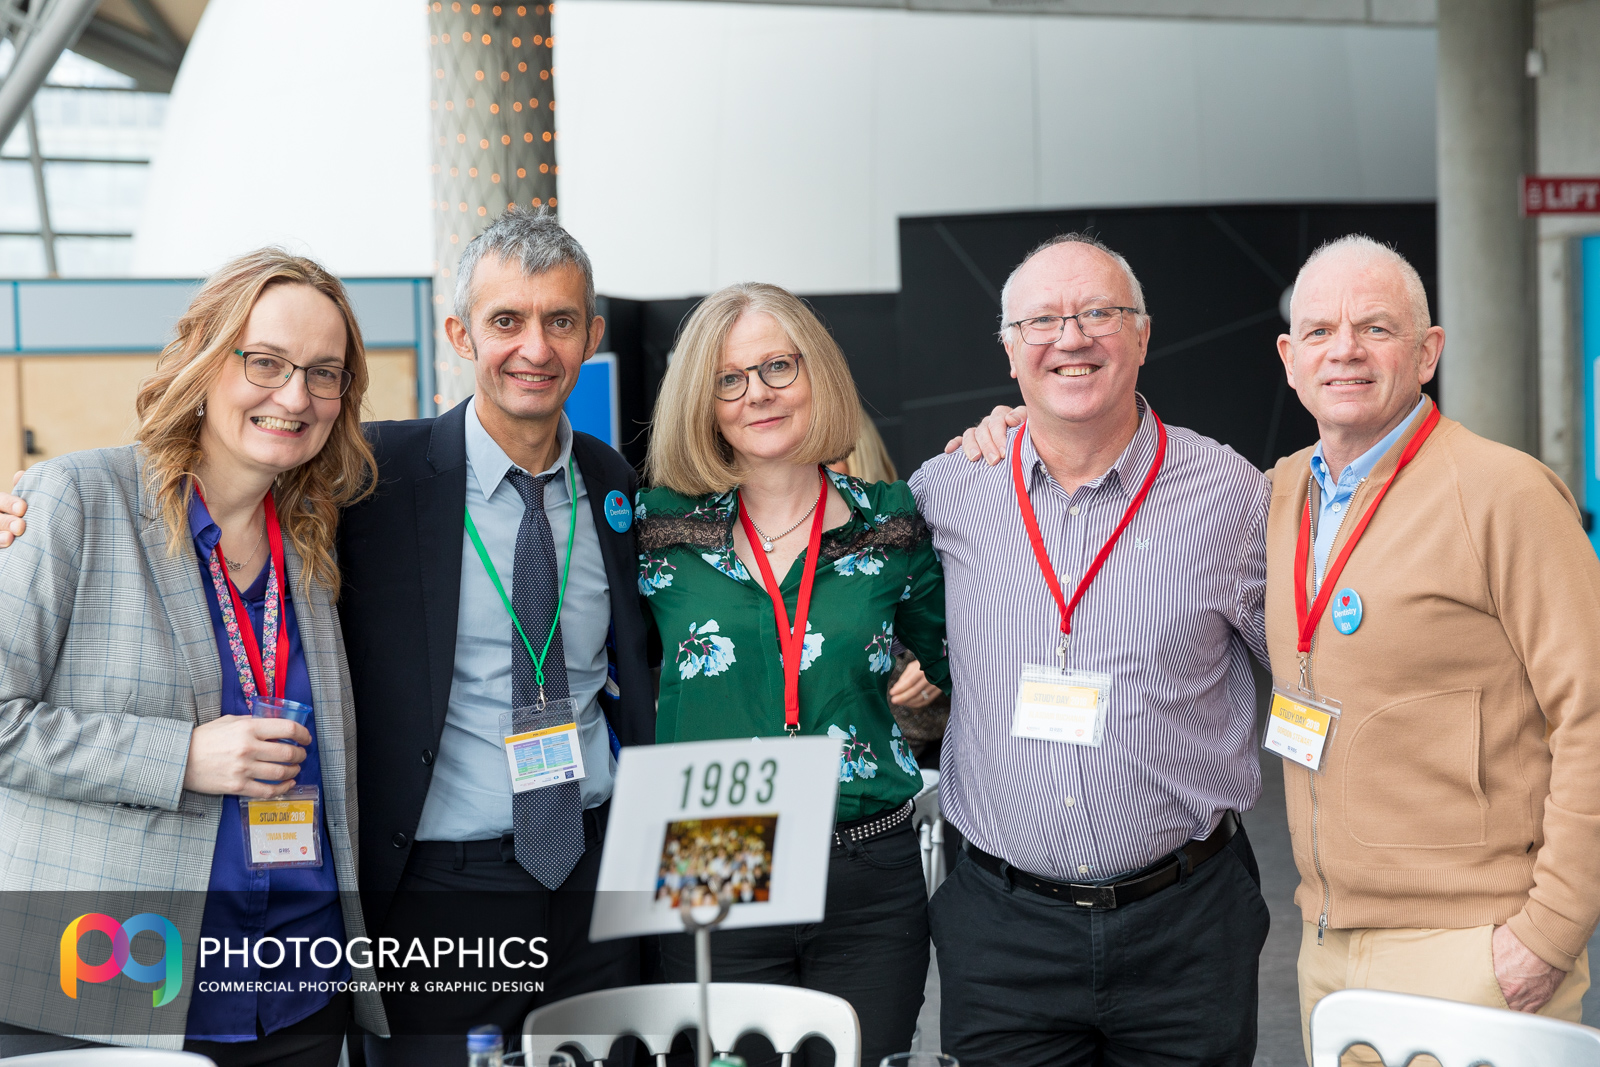 conference-event-PR-photography-science-centre-glasgow-edinburgh-scotland-15.jpg